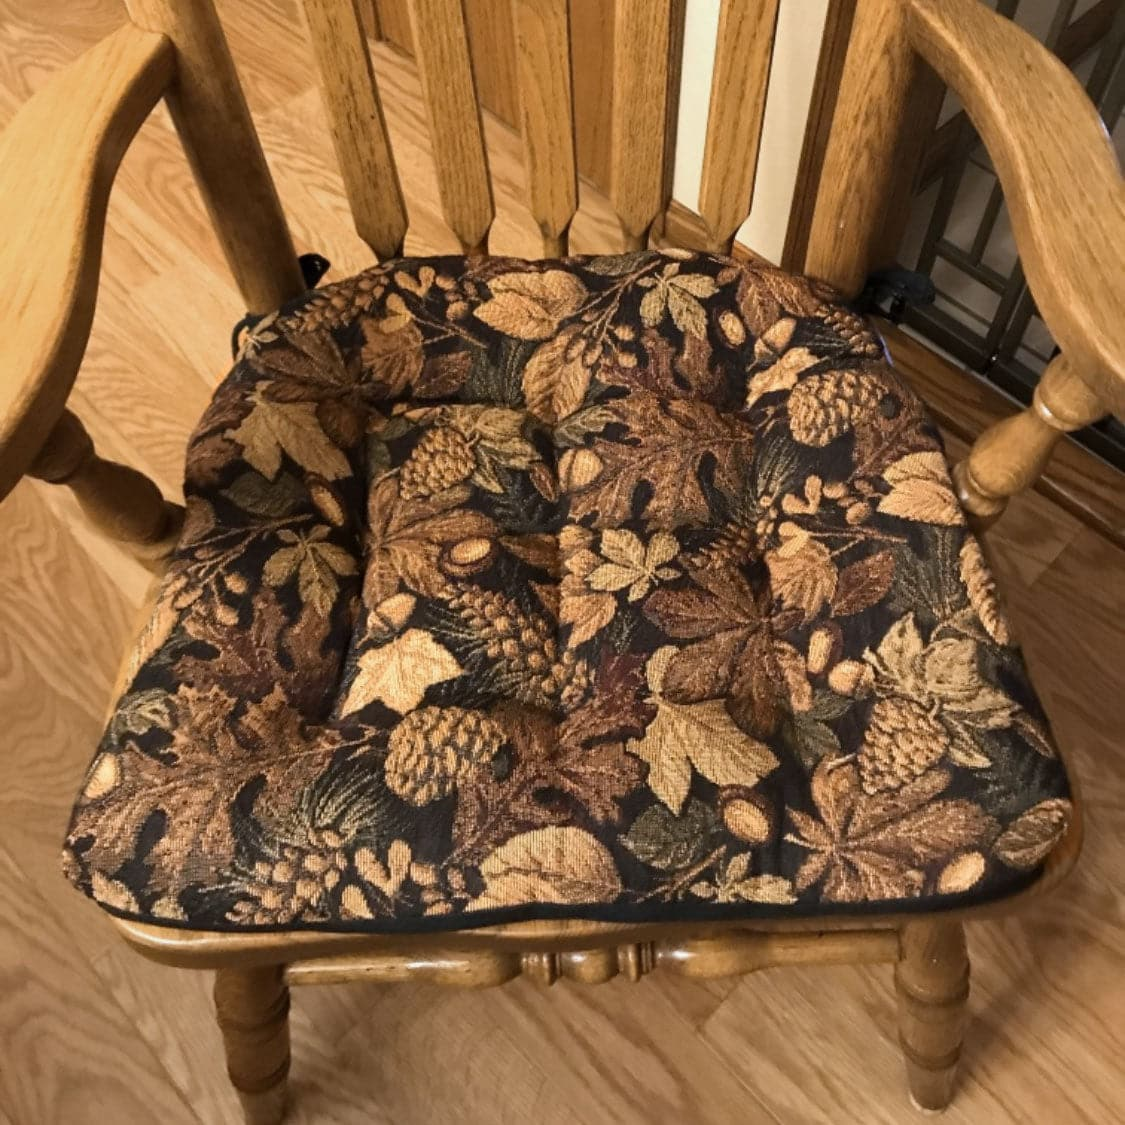 Pleasing Woodlands Forest Floor Dining Chair Pads With Ties Oak Customarchery Wood Chair Design Ideas Customarcherynet